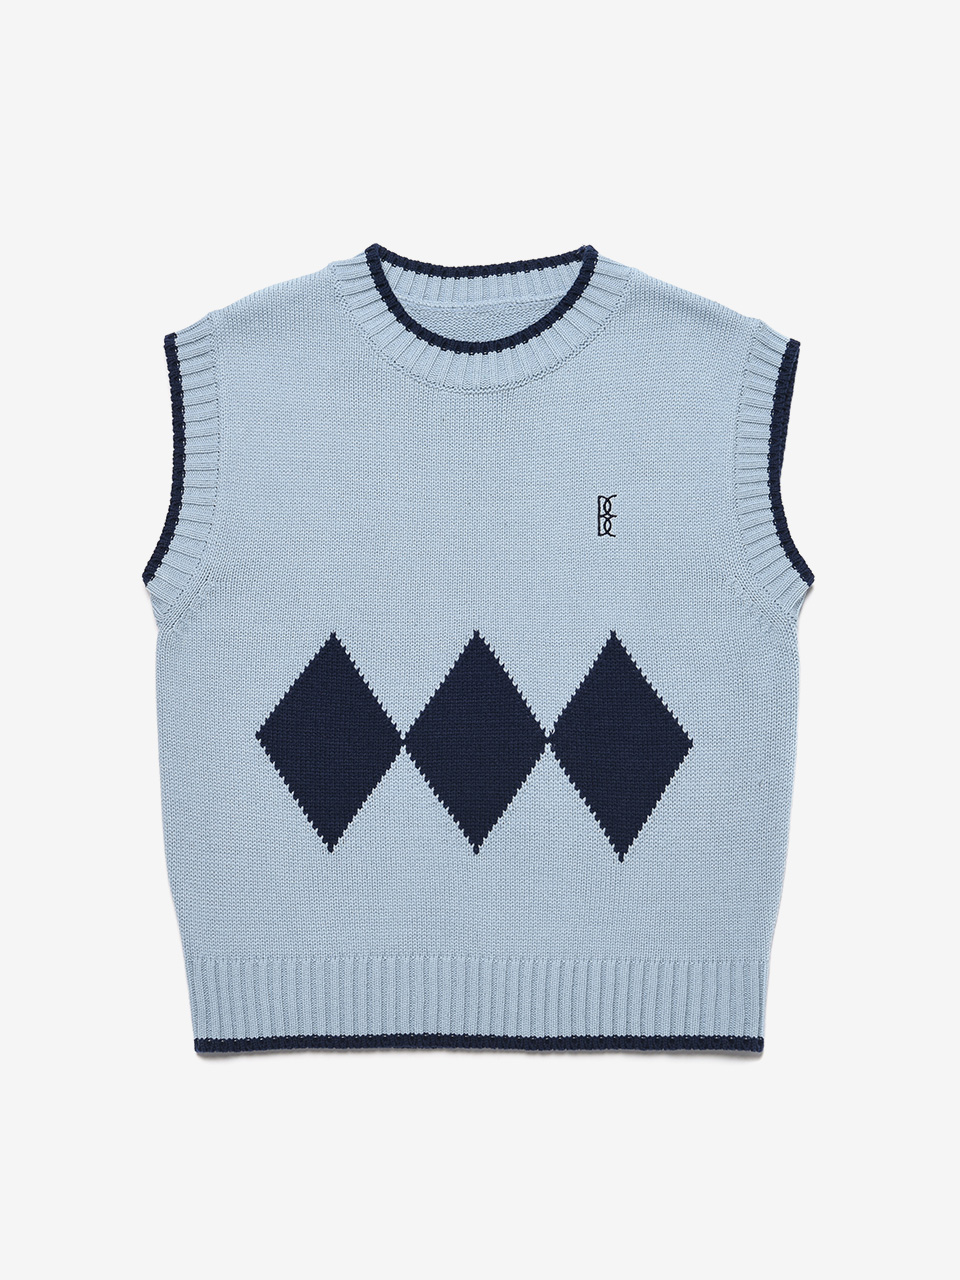 BENSIMON ARGYLE KNIT VEST (FOR WOMEN) - SKY BLUE